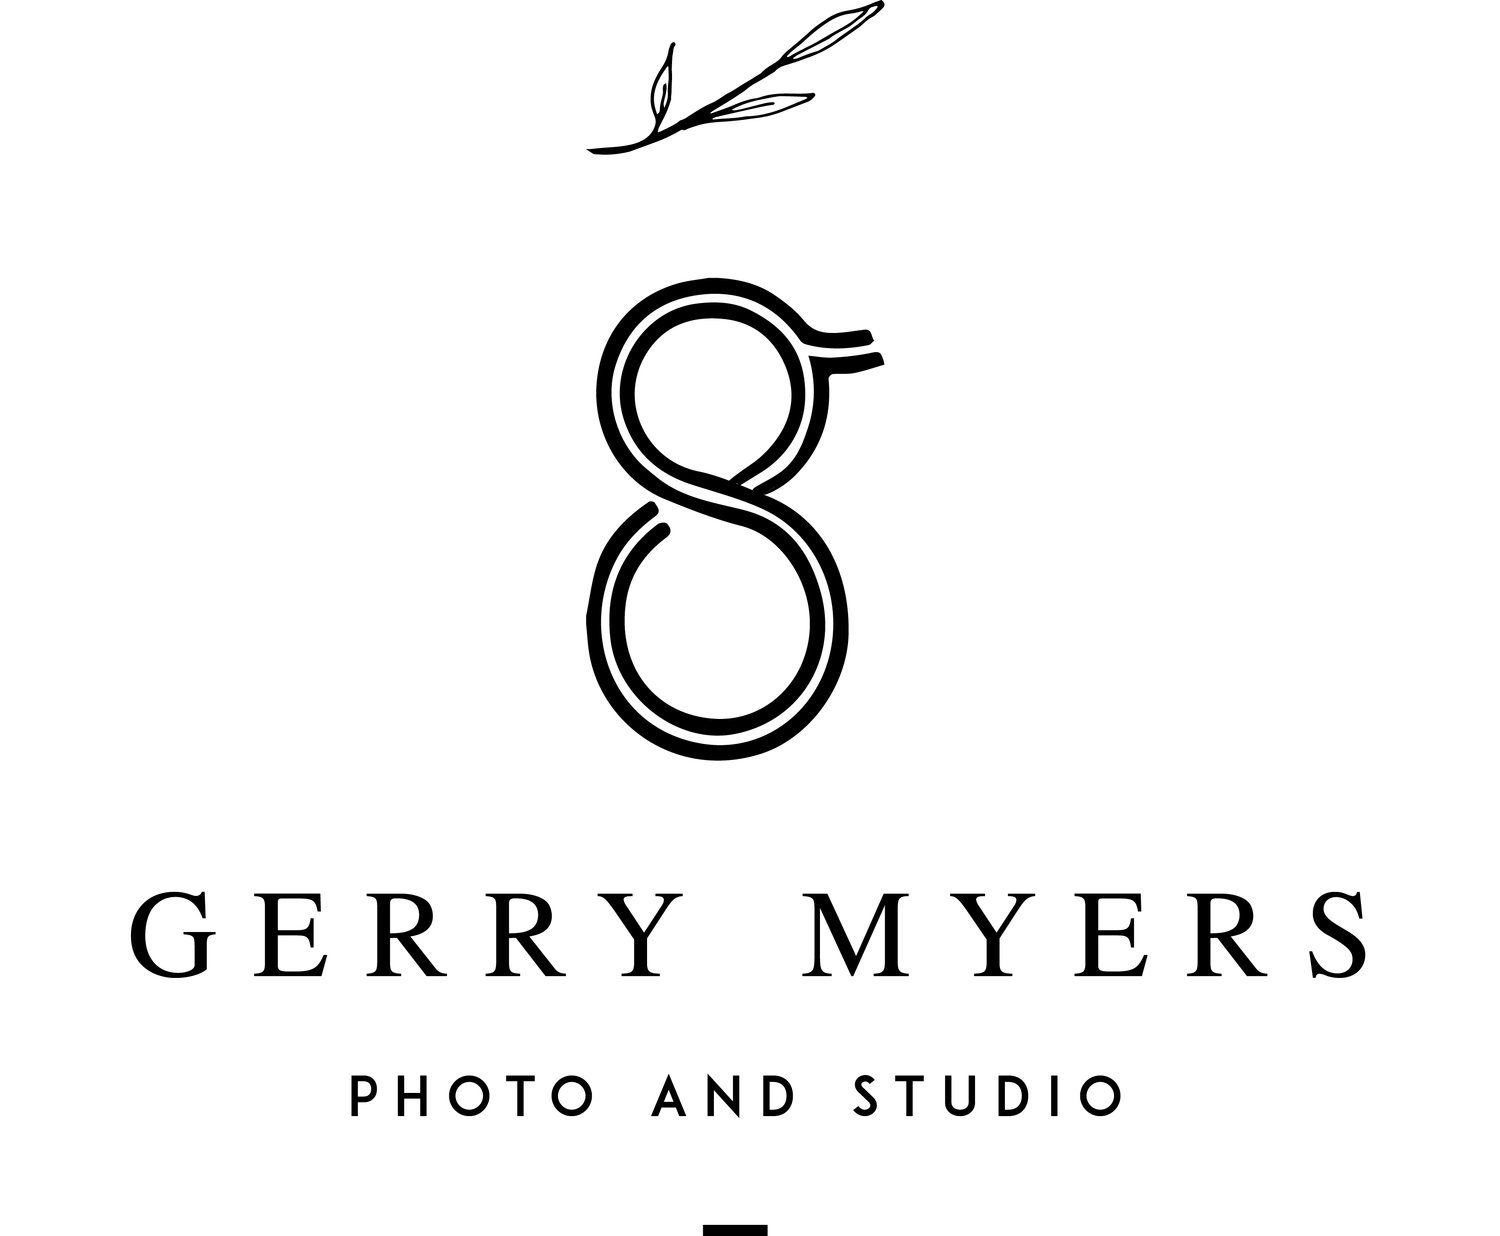 Gerry Myers Photo